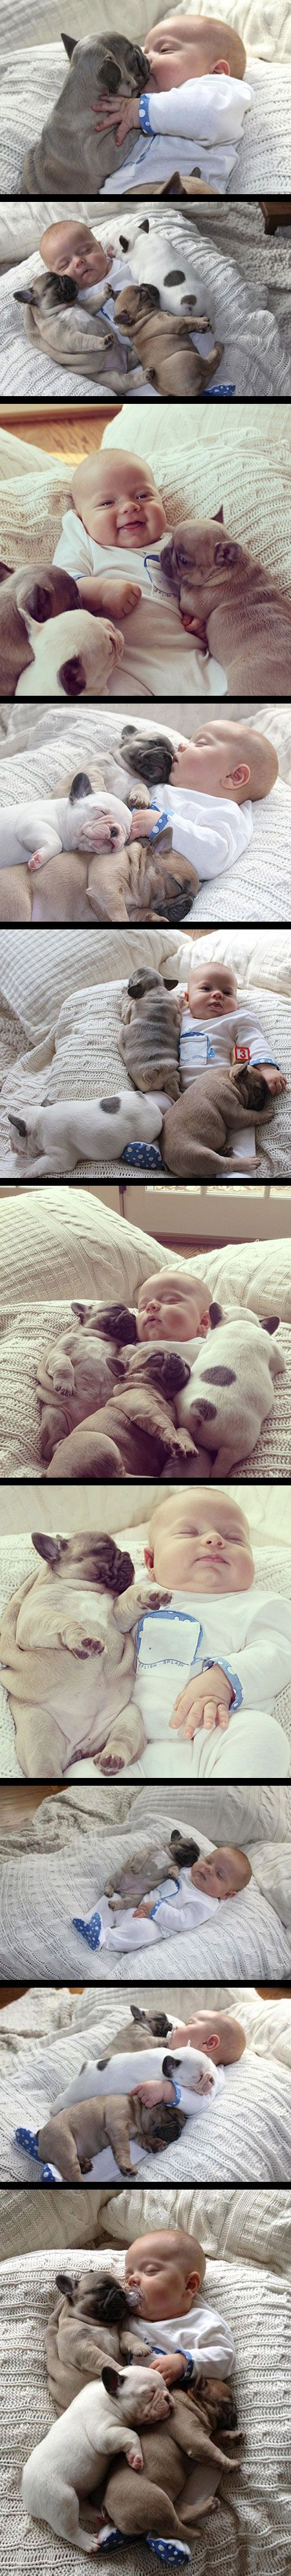 cute babies and french bulldog puppies.